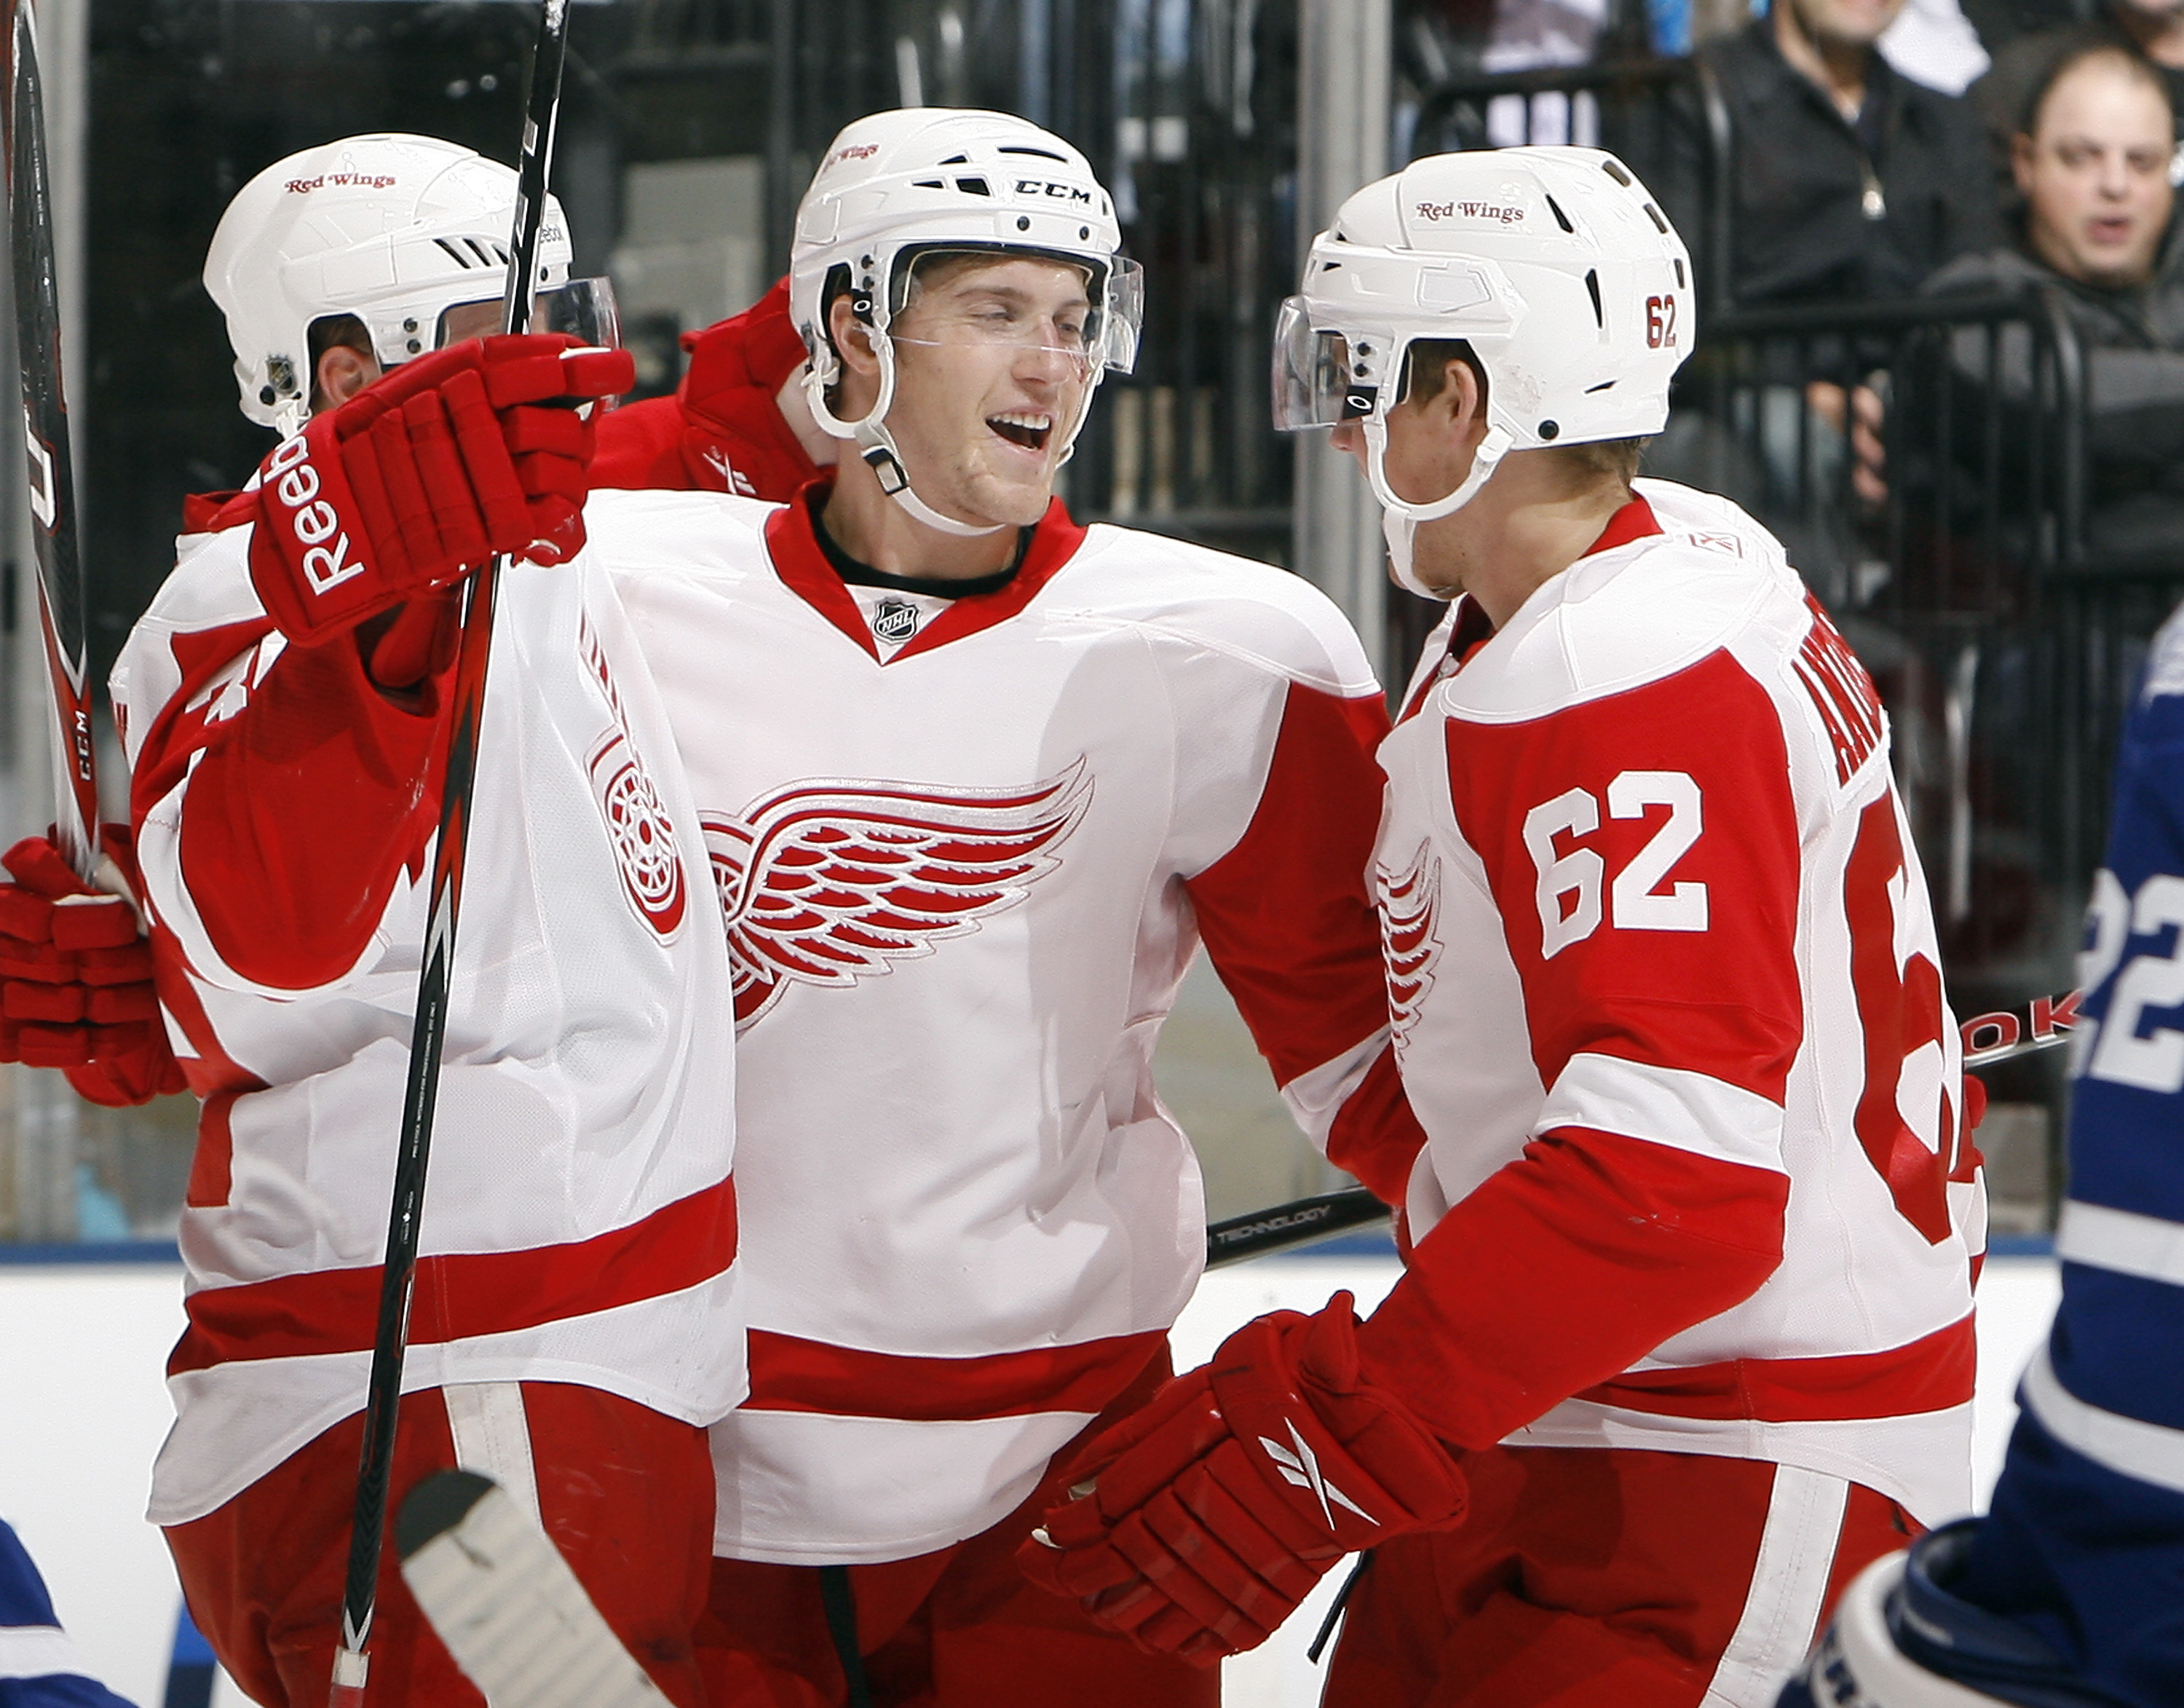 TORONTO - OCTOBER 2:  Jan Mursak #39, Cory Emmerton #48, and Joakim Andersson #62 of the Detroit Red Wings celebrate a goal against the Toronto Maple Leafs during a preseason NHL game at the Air Canada Centre October 2, 2010 in Toronto, Ontario, Canada. (